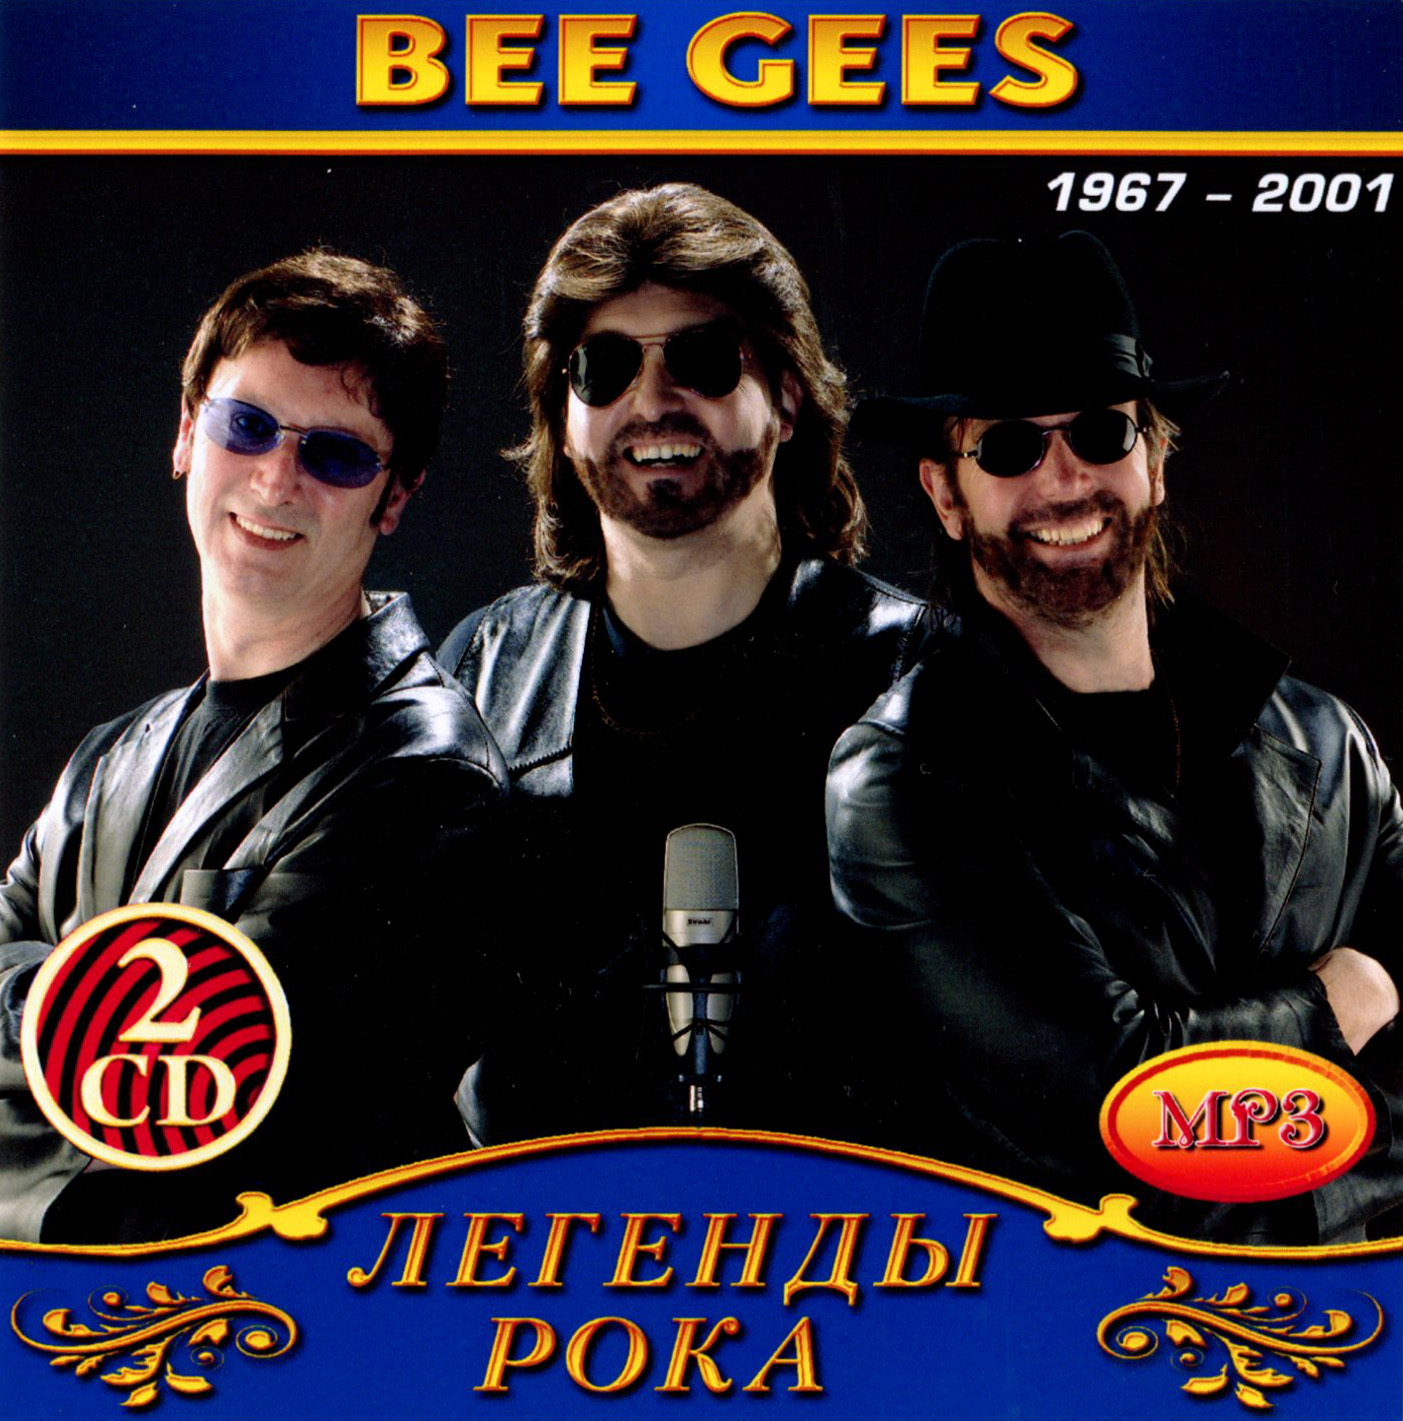 Bee Gees 2cd [mp3]